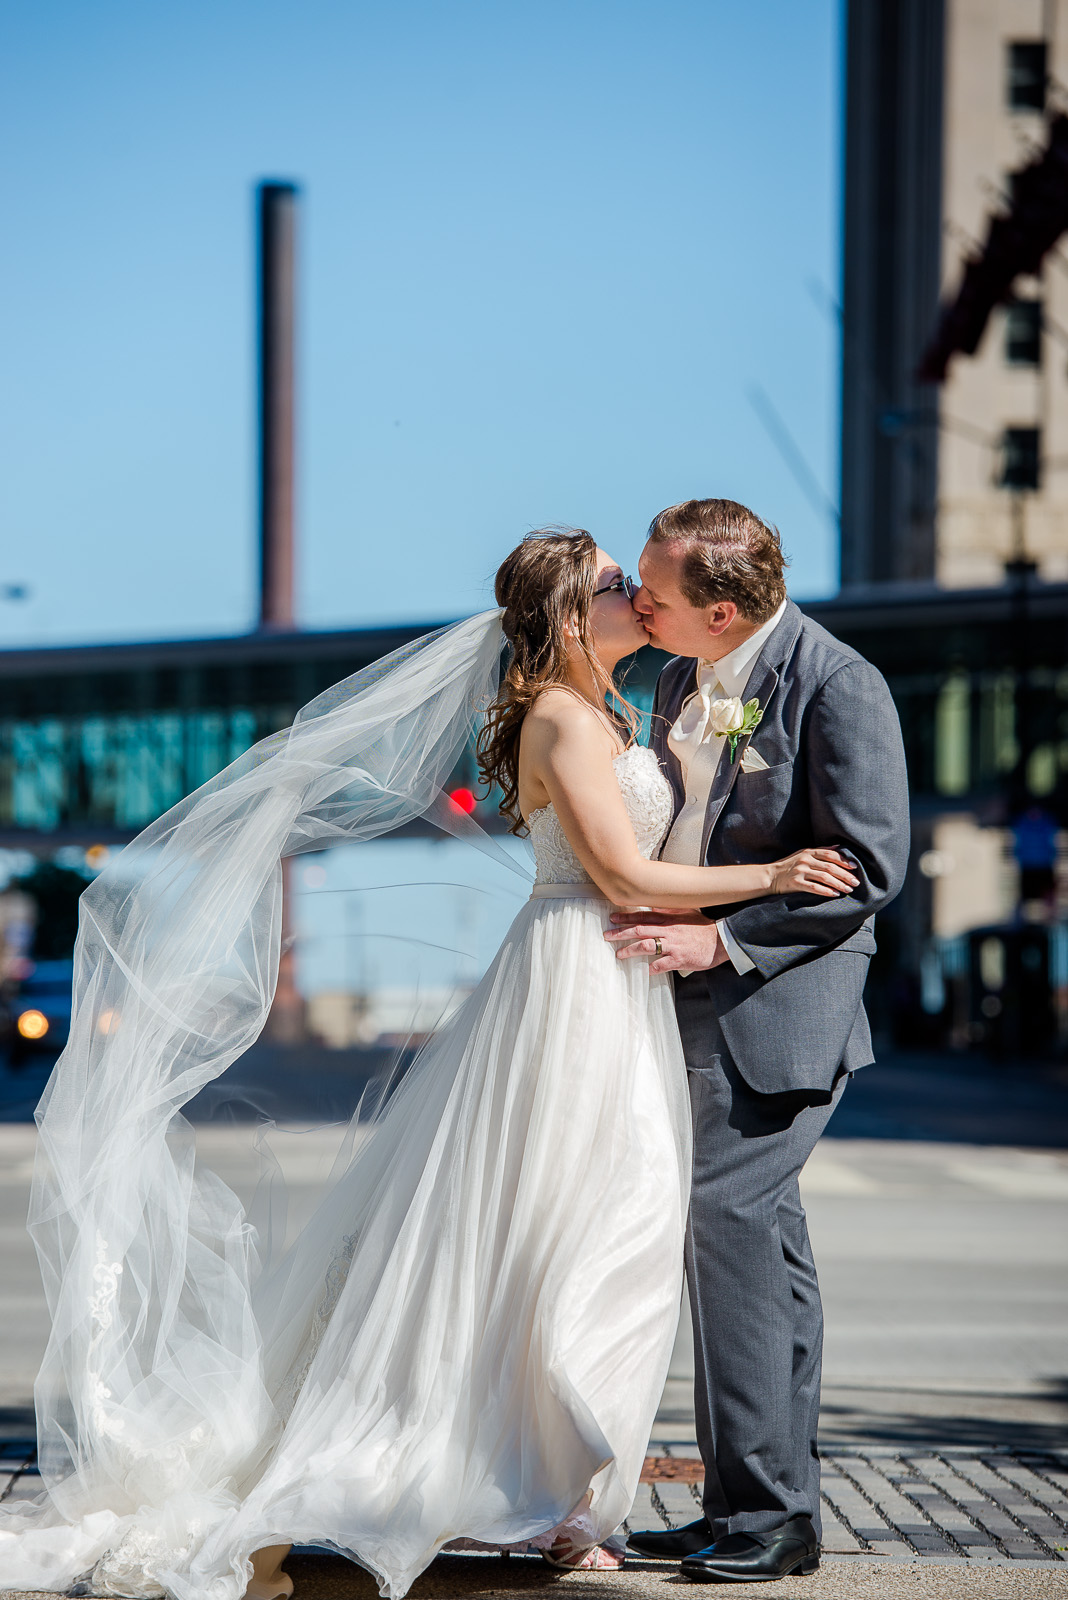 Eric_and_Christy_Photography_Blog_Julie_Adam_Wedding-27